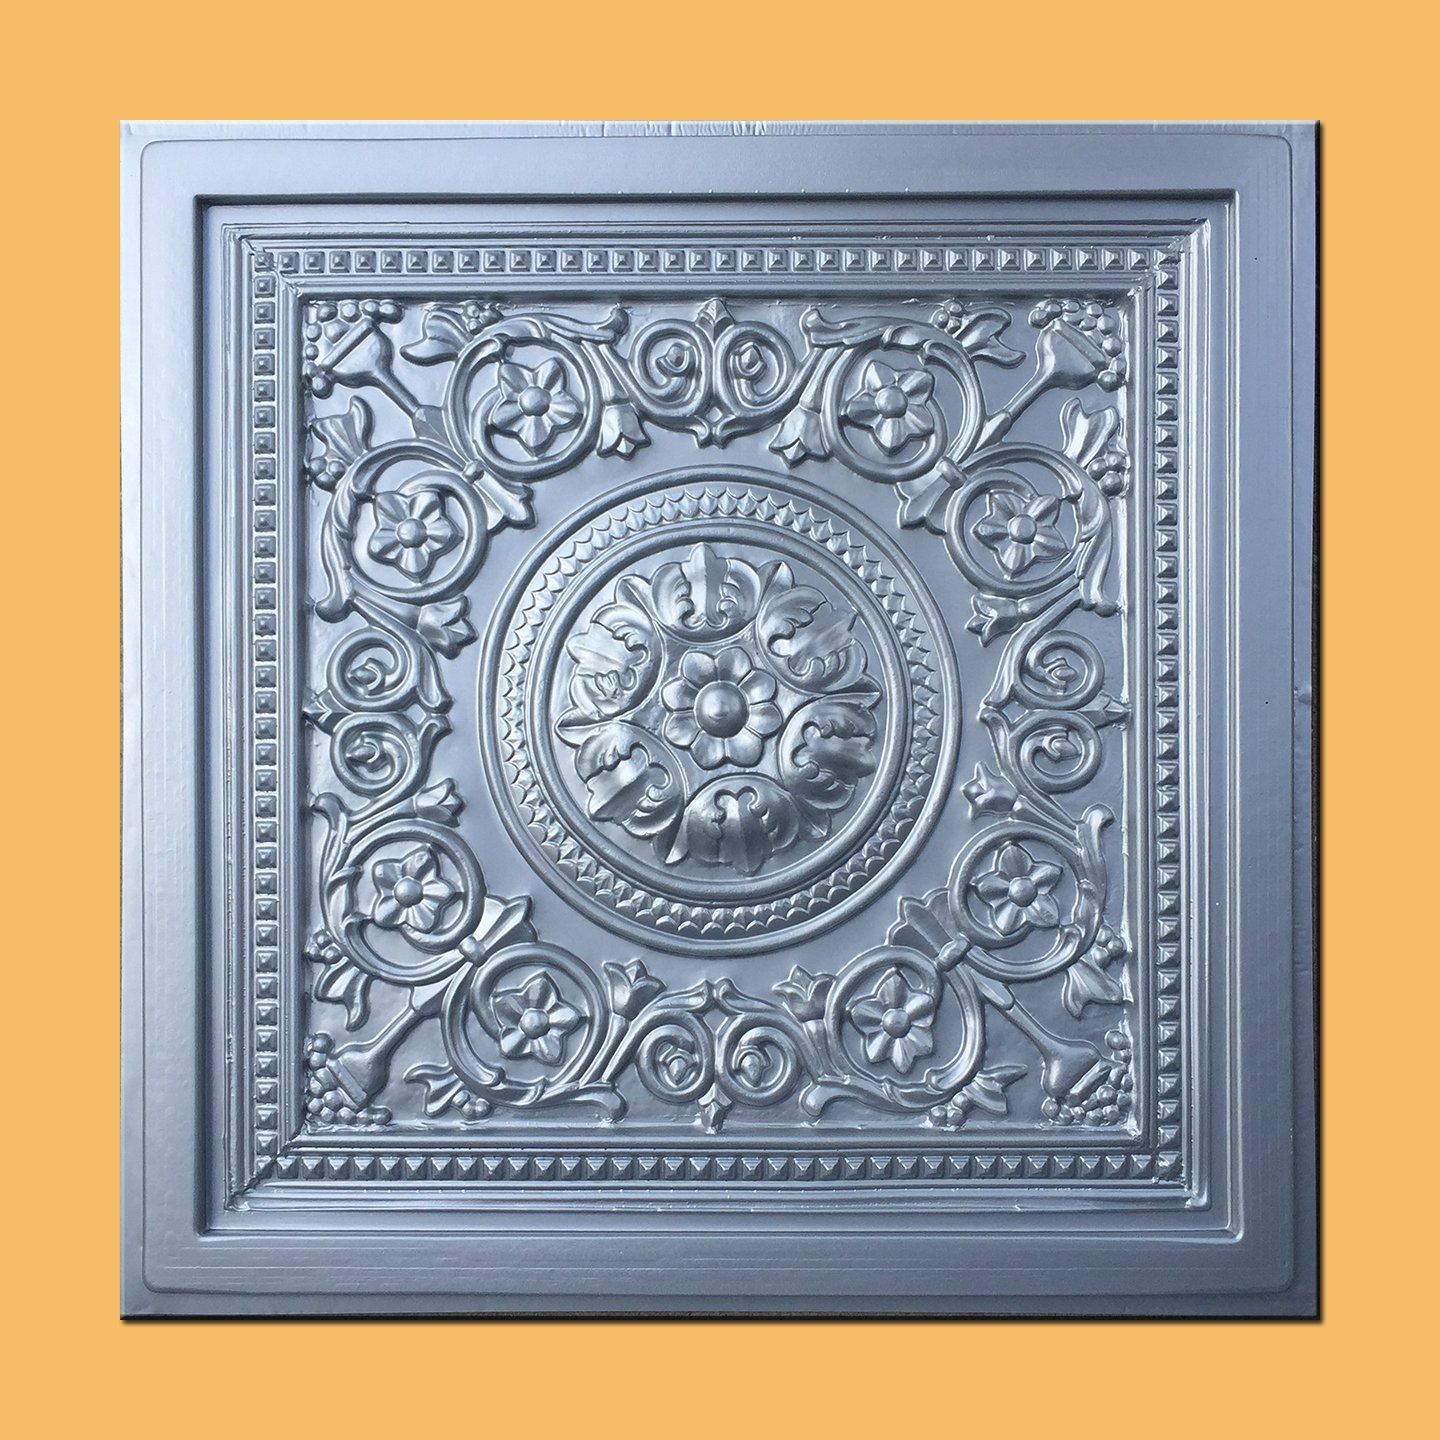 Majesty Silver (24x24'' Pvc) Ceiling Tile - Case of 30pc